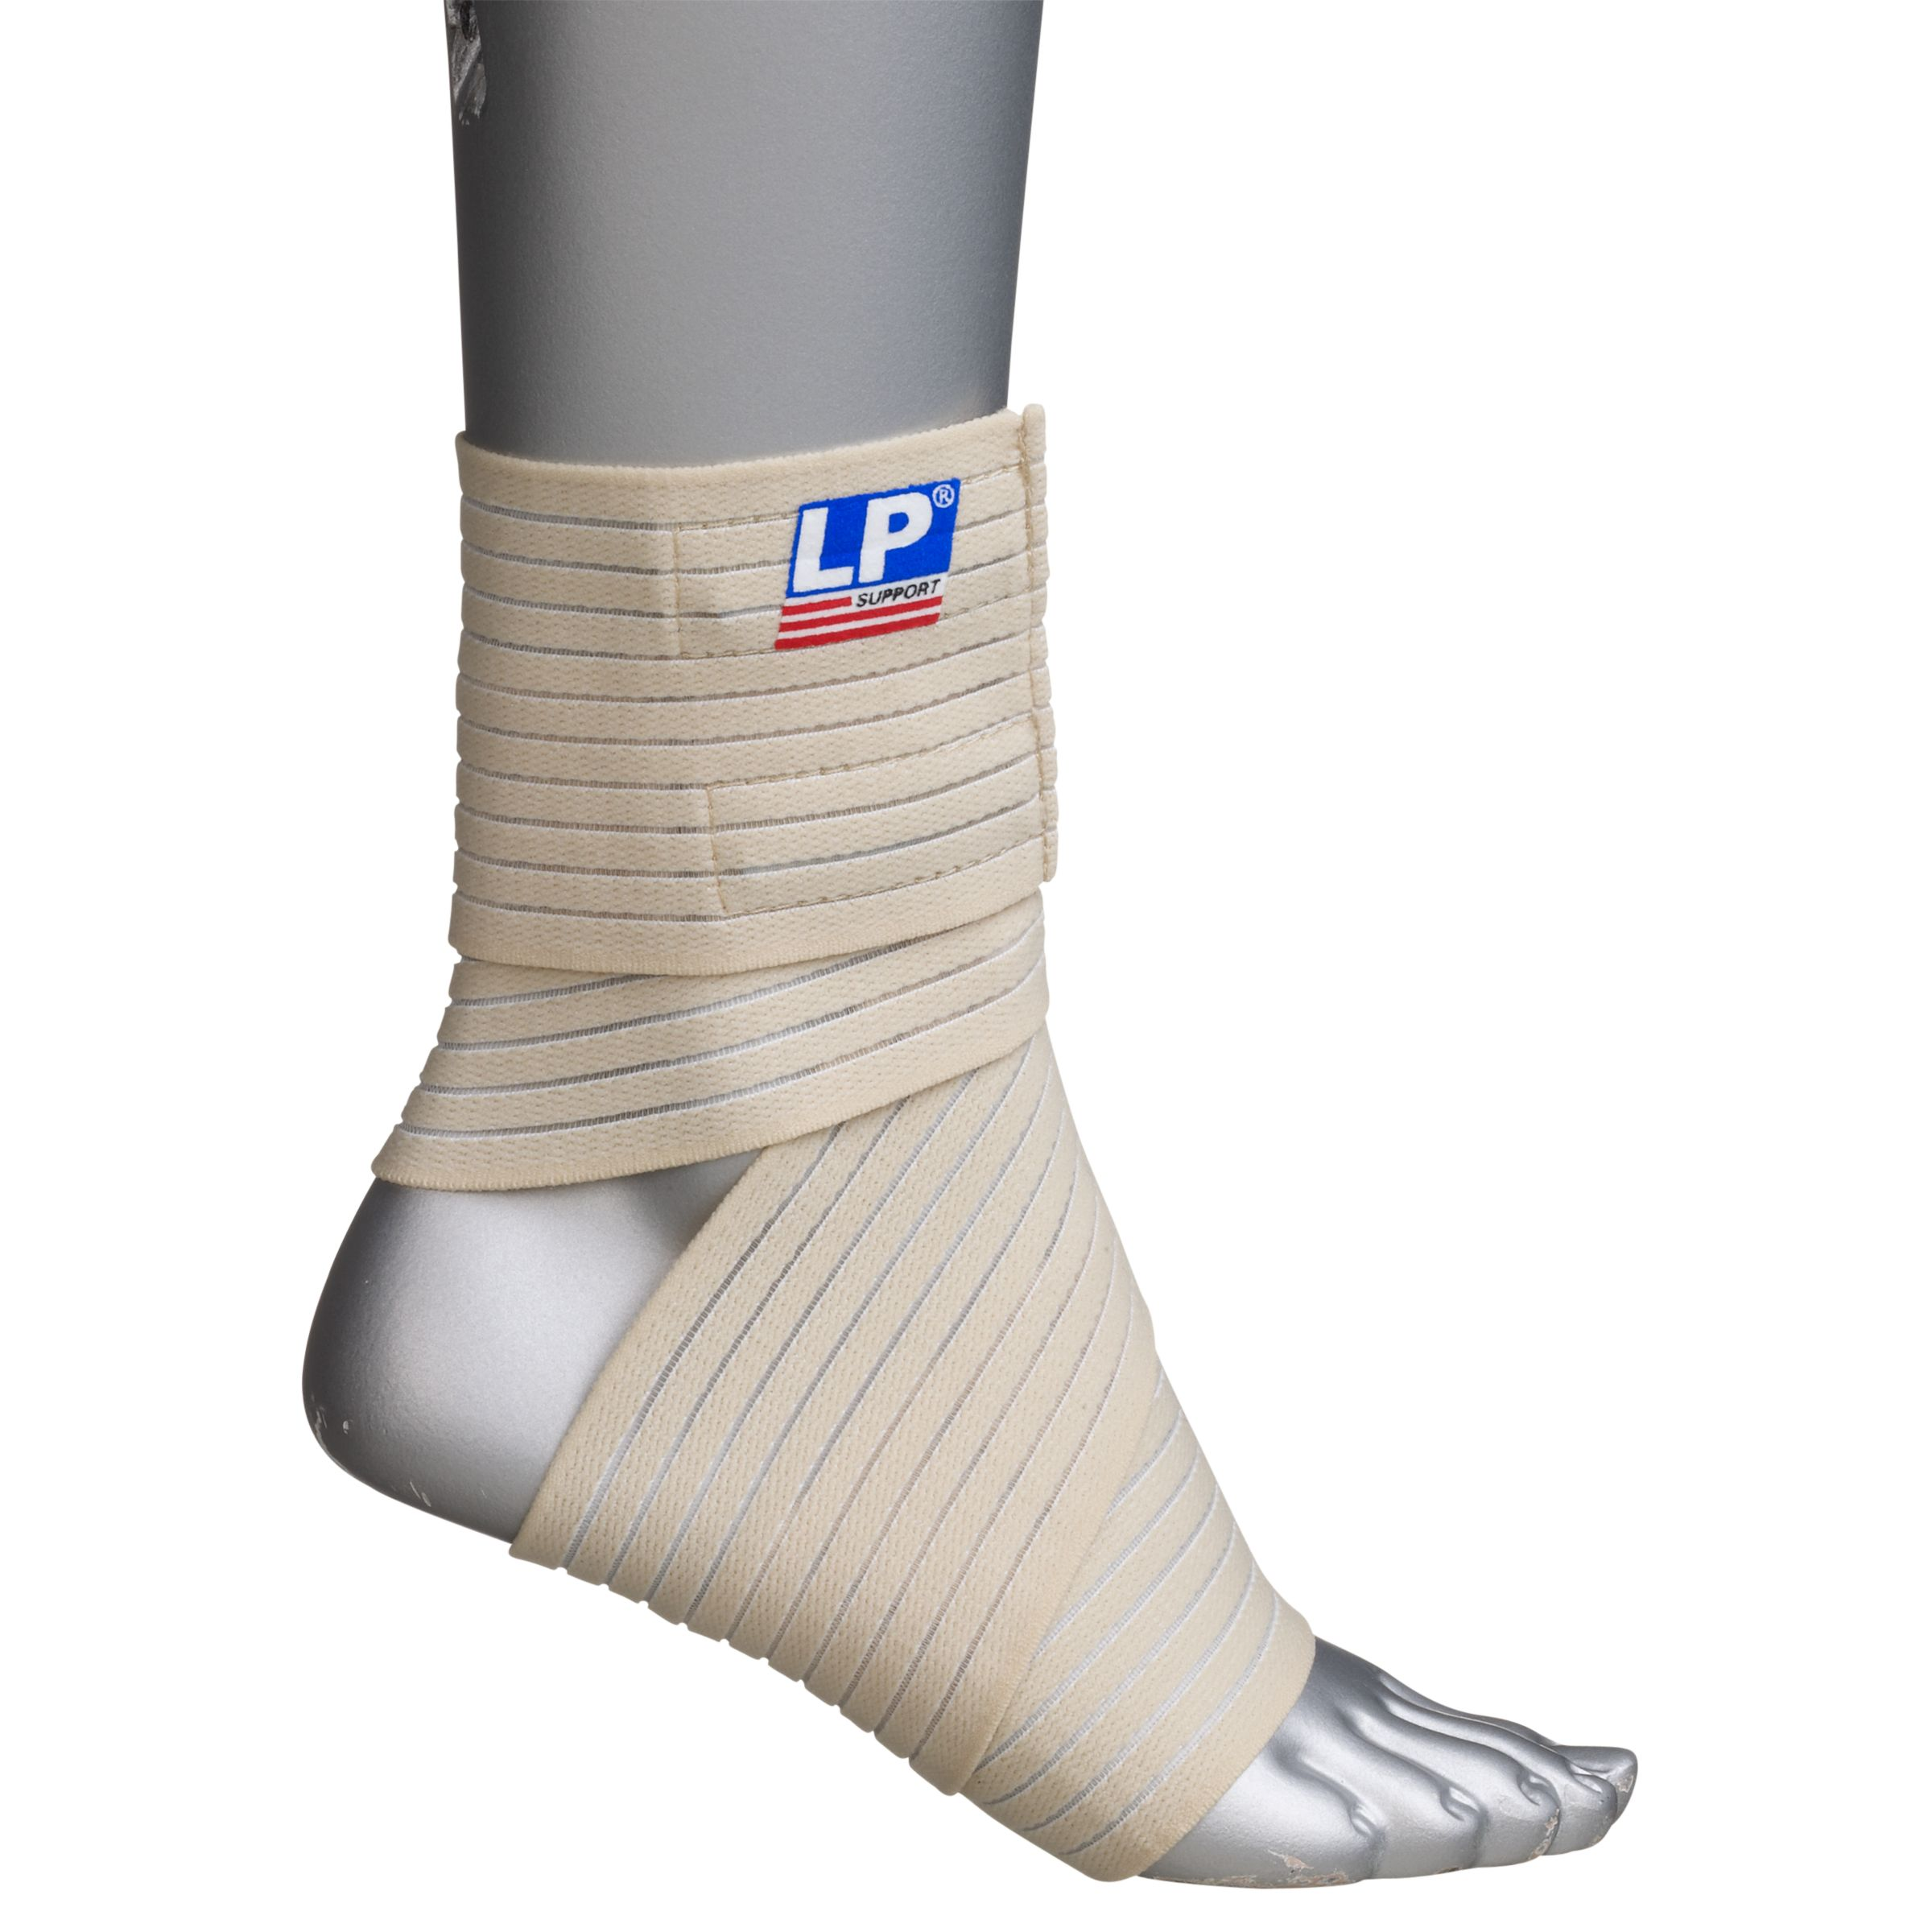 Lp Supports LP Supports Ankle Wrap, One Size